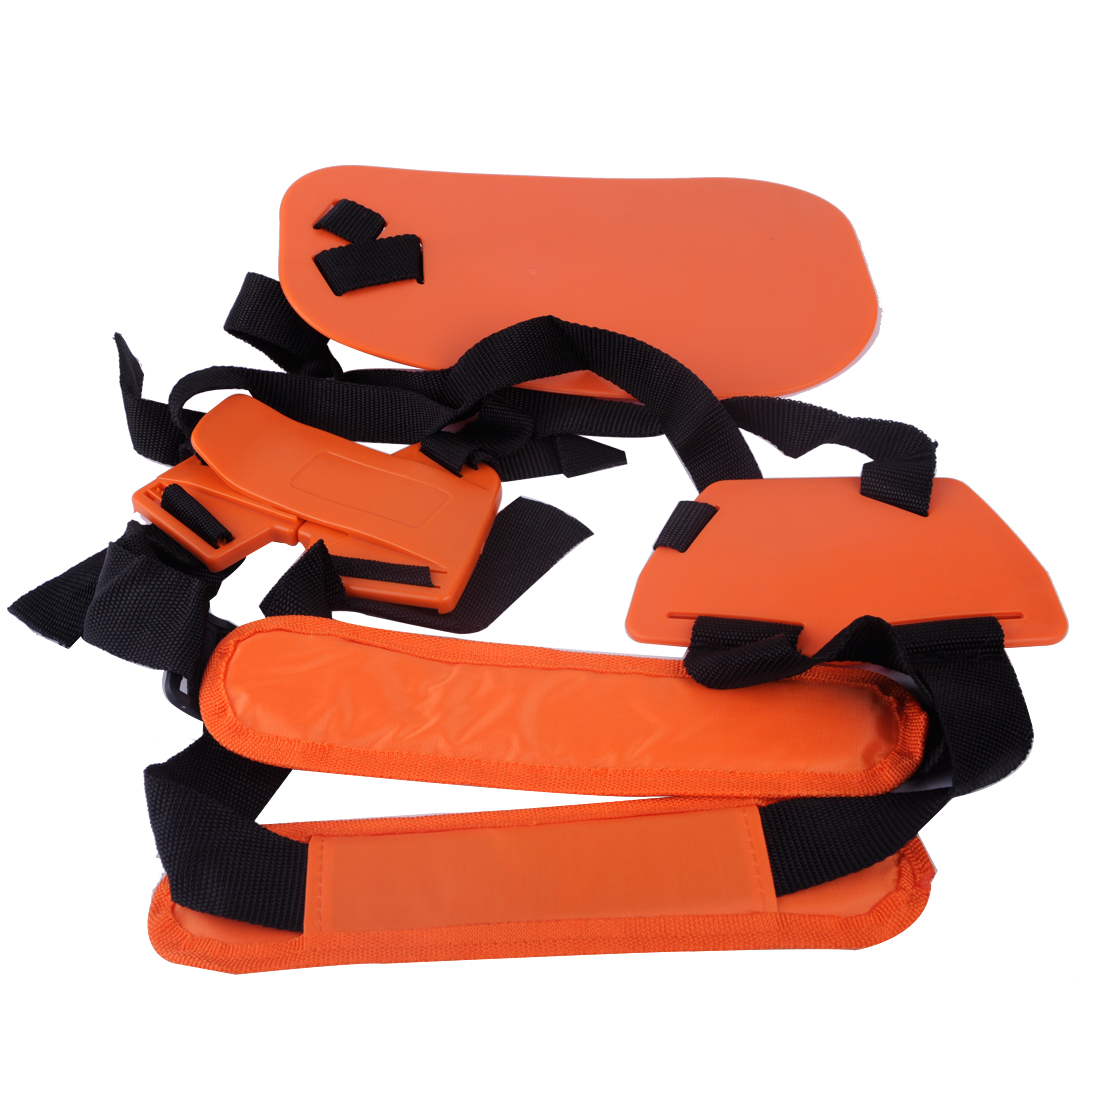 Tools Garden Power Tools Universal Trimmer Double Shoulder Strap Mower Nylon Y-shaped Belt For Brush Cutter Garden Toolnew